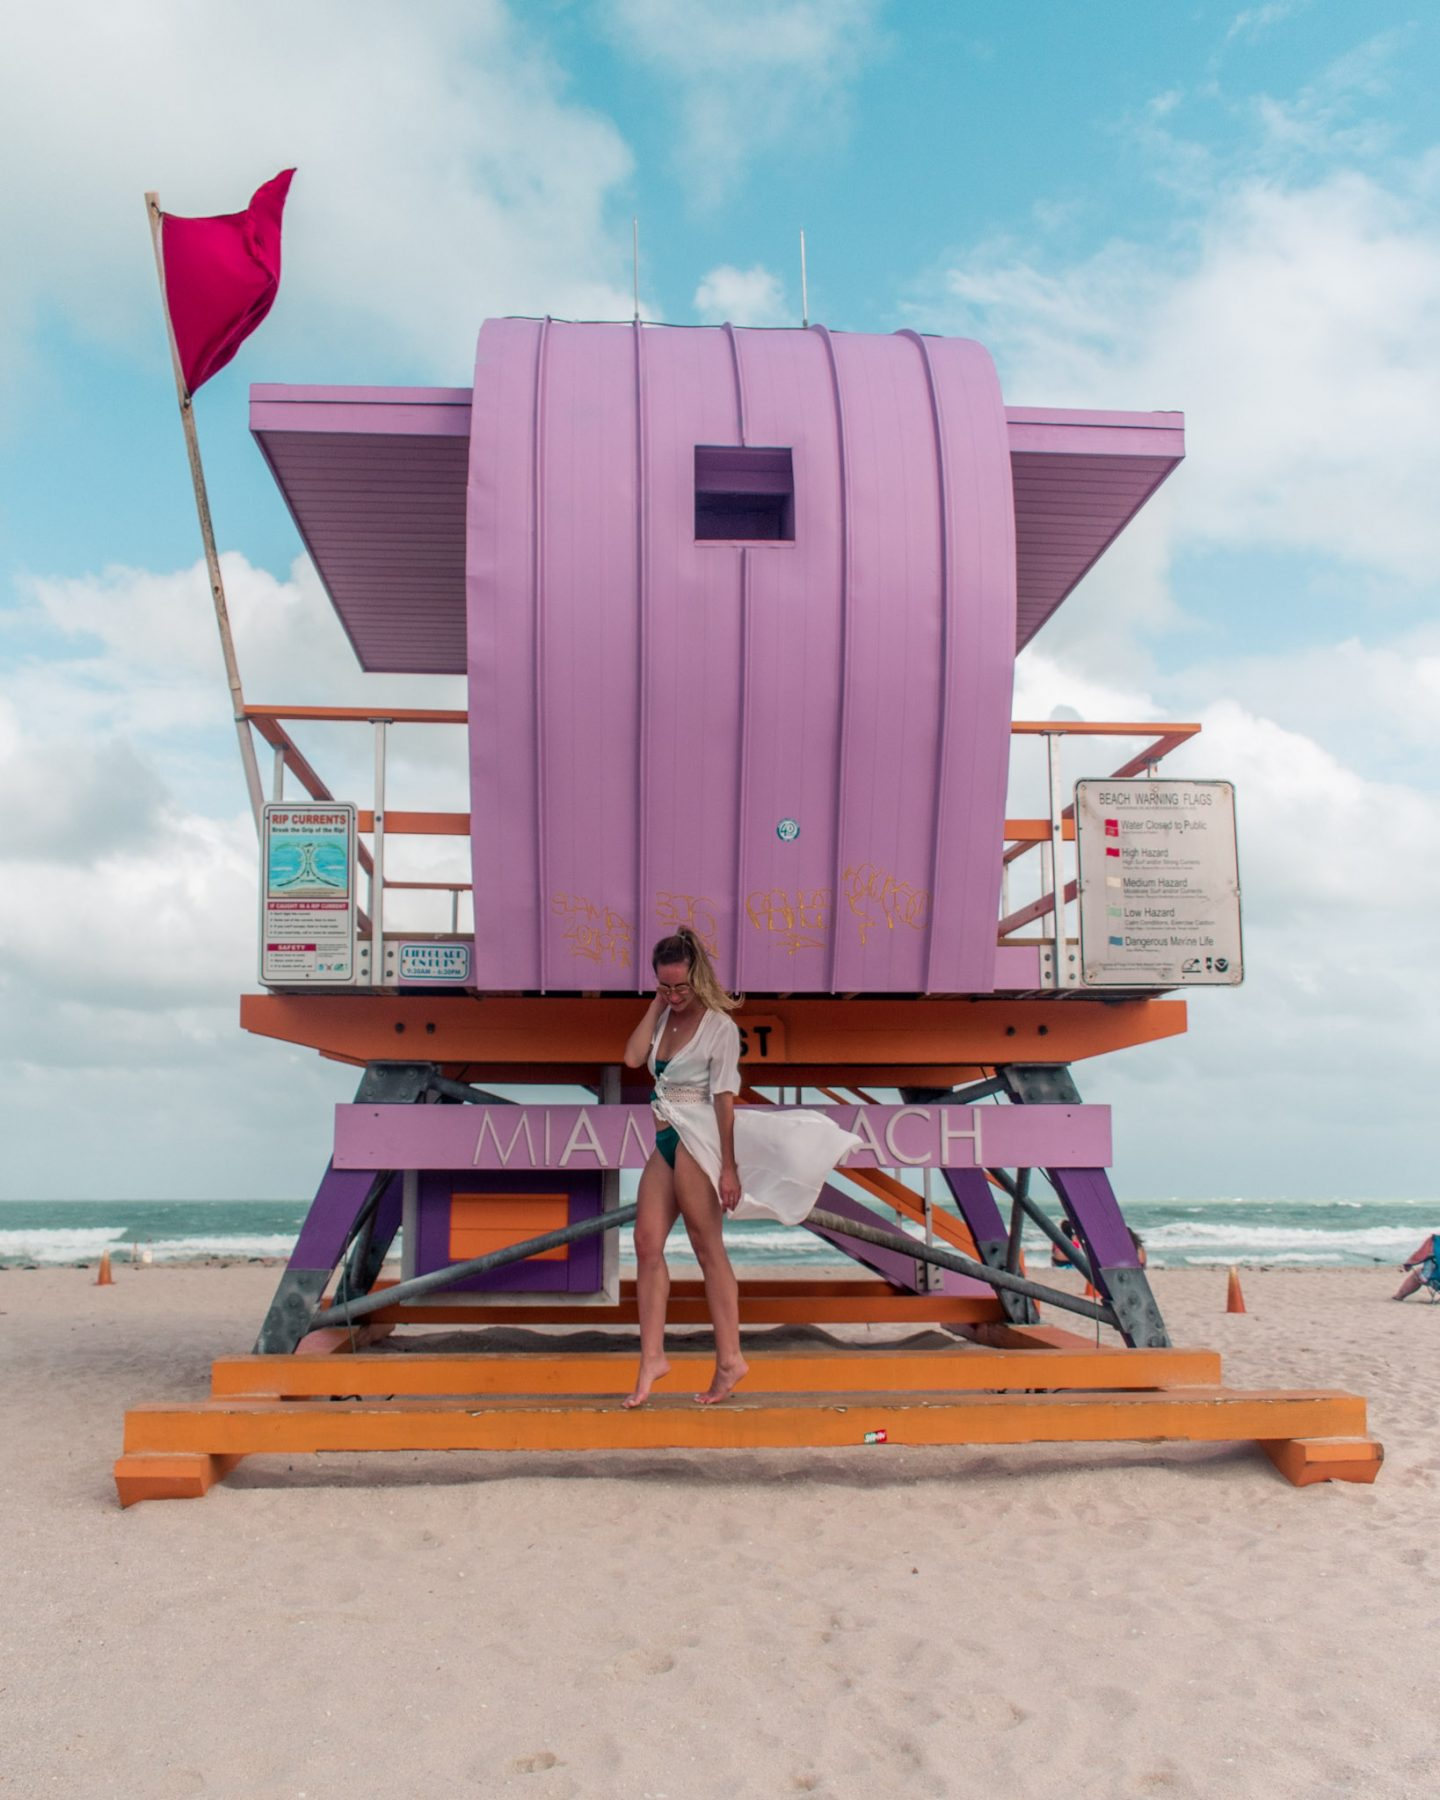 Instagram worthy places in miami art deco lifeguard stands